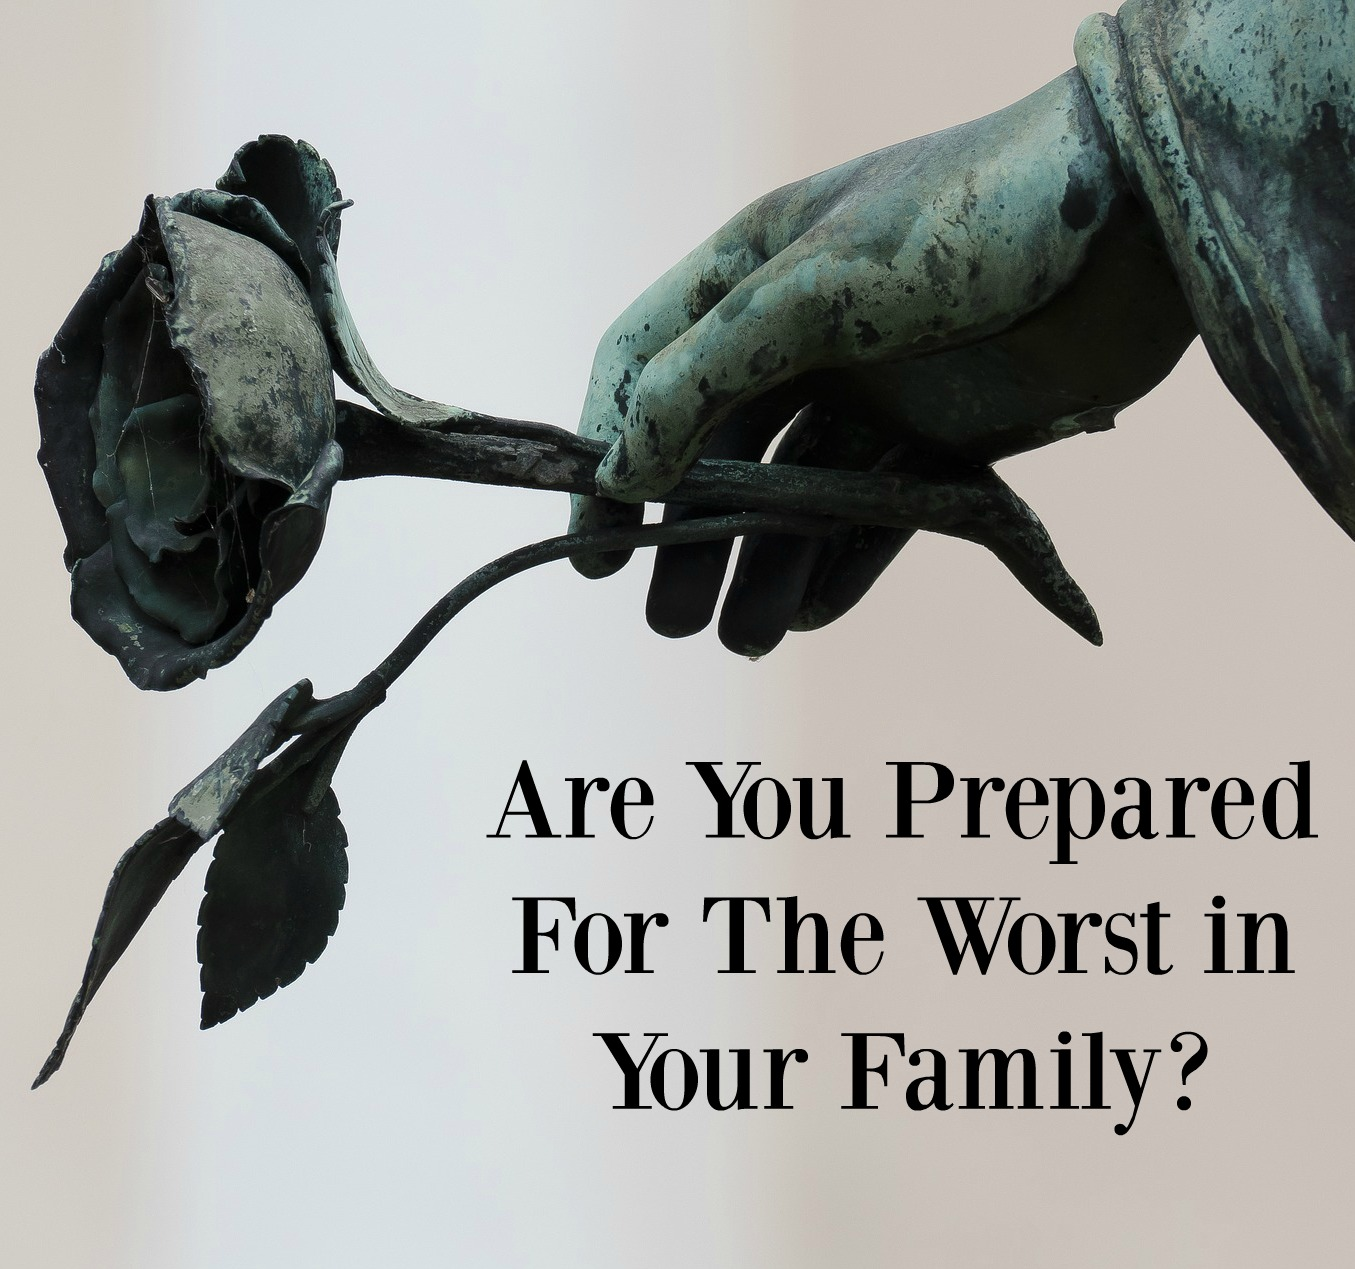 are-you-prepared-for-the-worst-to-happen-in-your-family